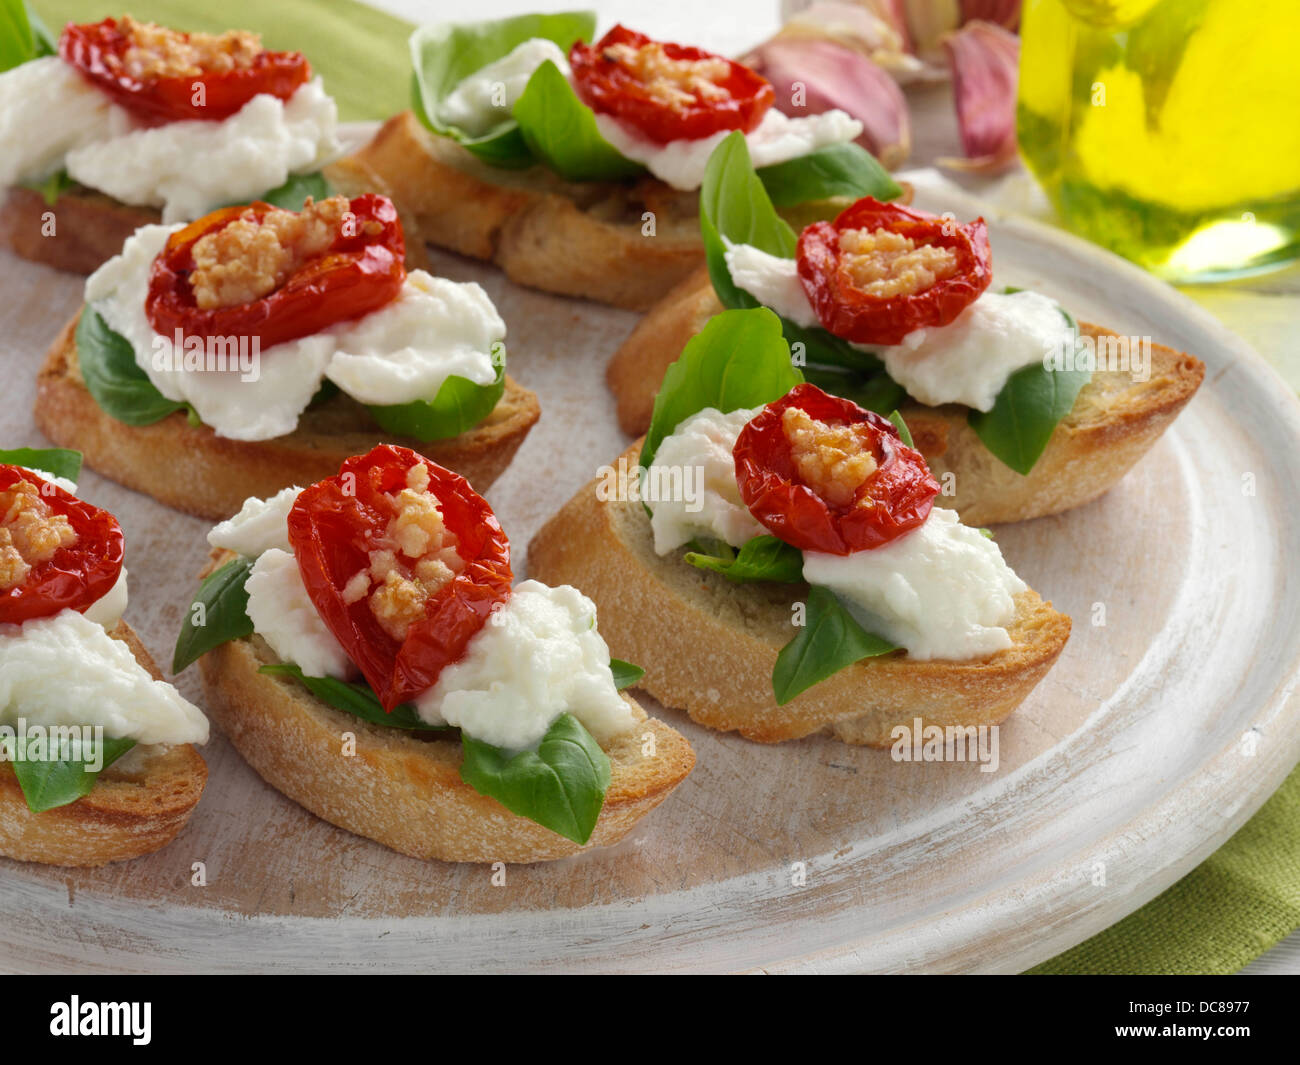 bruschetta italian finger food snacks canapes stock photo 59189851 alamy. Black Bedroom Furniture Sets. Home Design Ideas